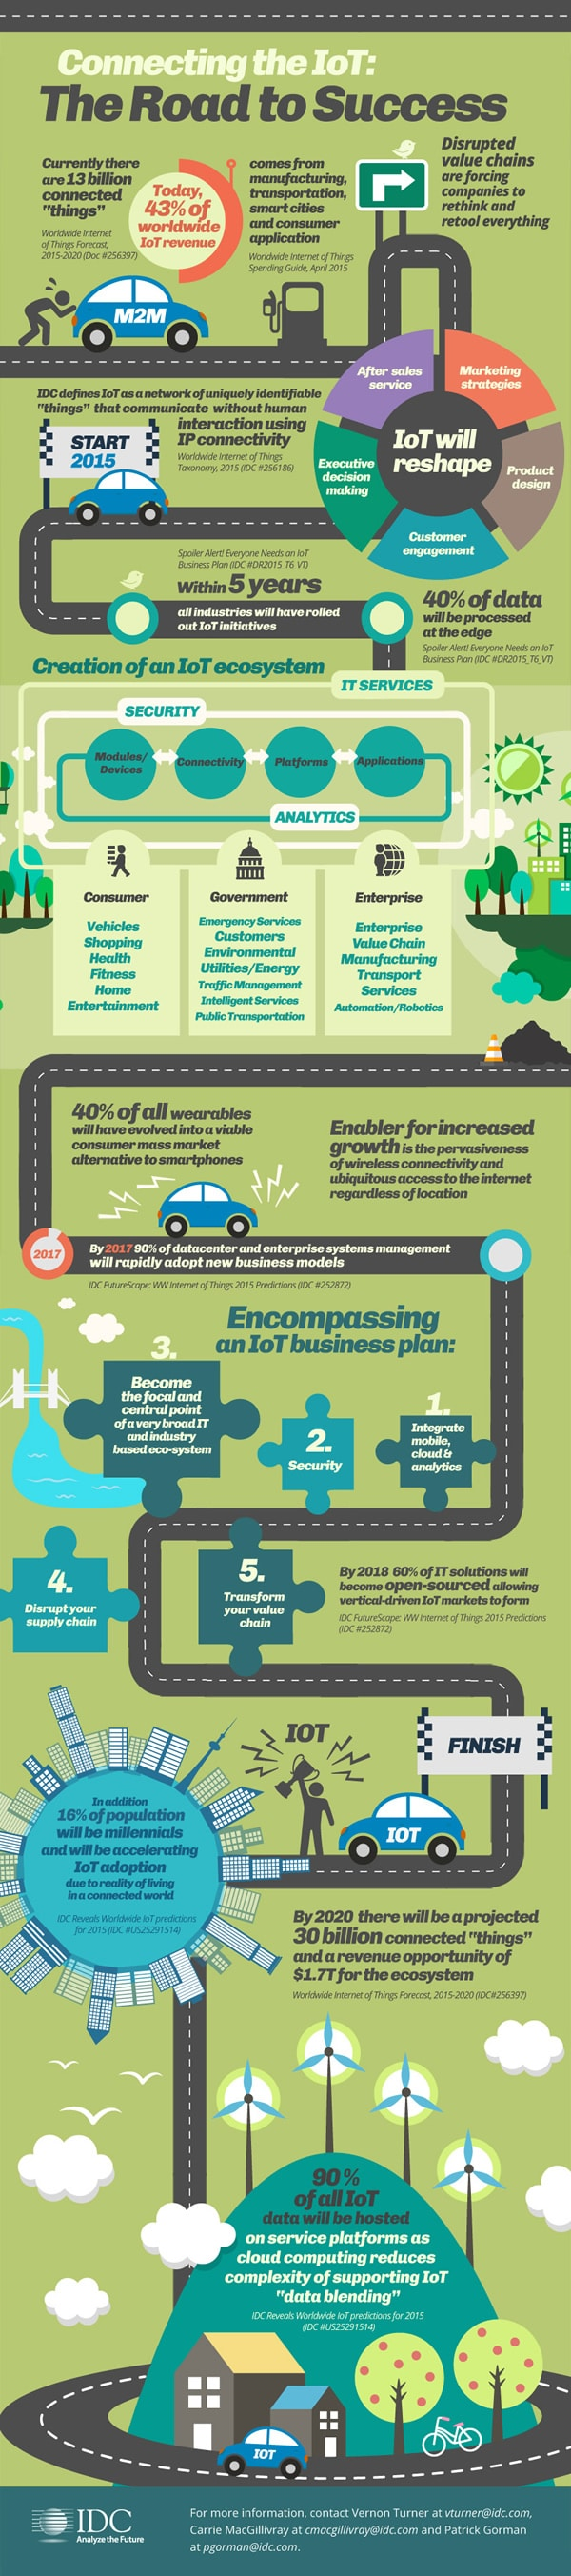 IoT predictions by IDC - security as an intrinsic part of an IoT business plan: via IDC infographics